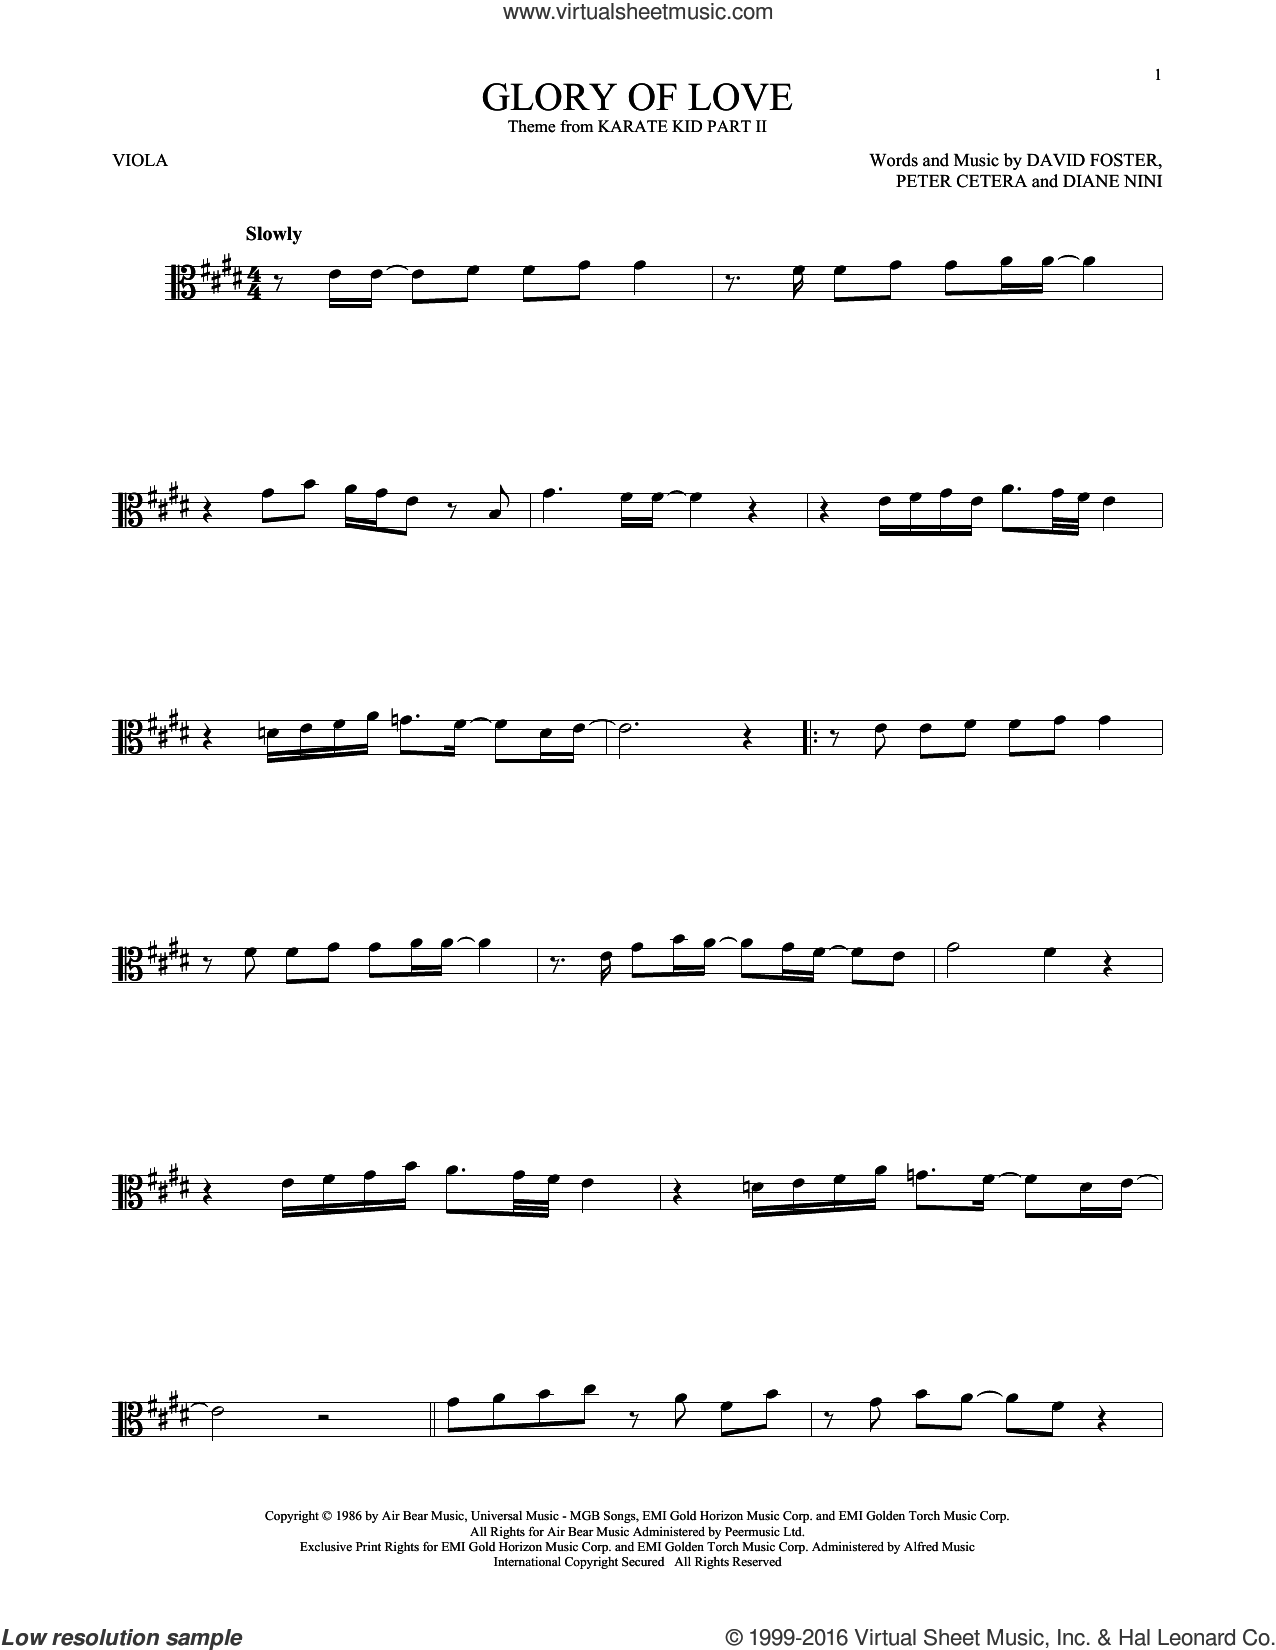 Glory Of Love sheet music for viola solo by Peter Cetera, David Foster and Diane Nini, intermediate skill level